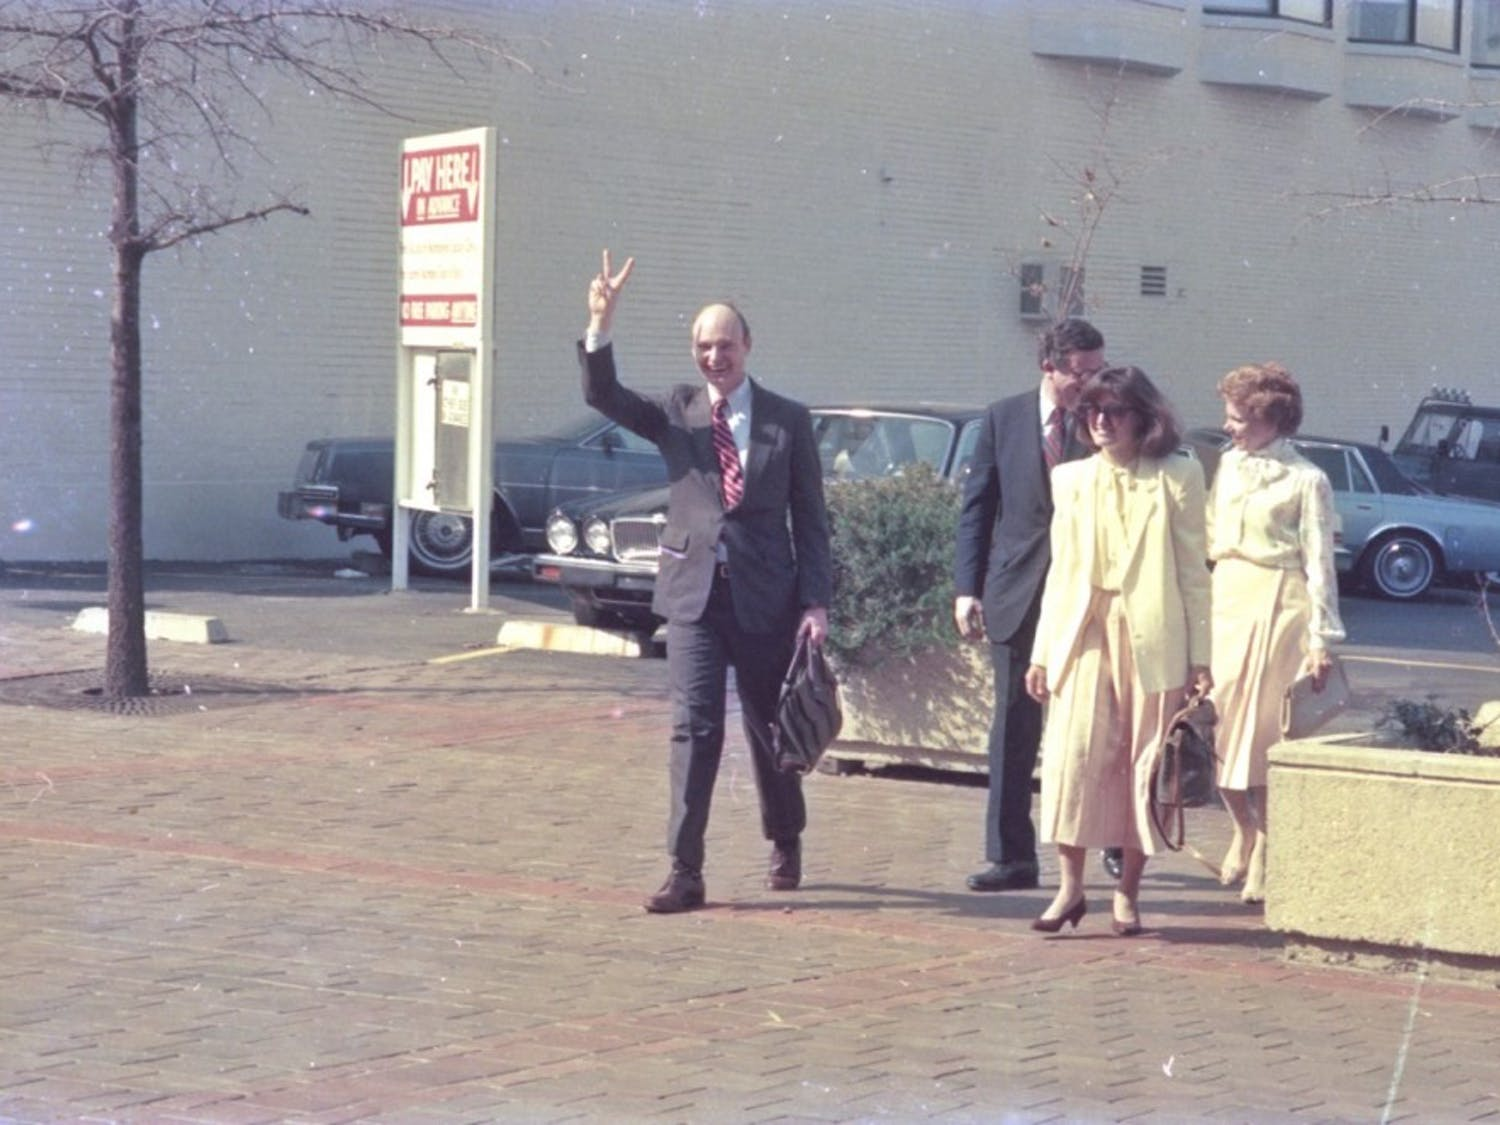 Walter Hussman Jr. walks out of a Little Rock, Arkansas, courthouse in March 1986 after being exonerated by a federal jury of all charges alleging predatory business practices in an antitrust lawsuit by his rival newspaper. Photo courtesy of Walter Hussman Jr.